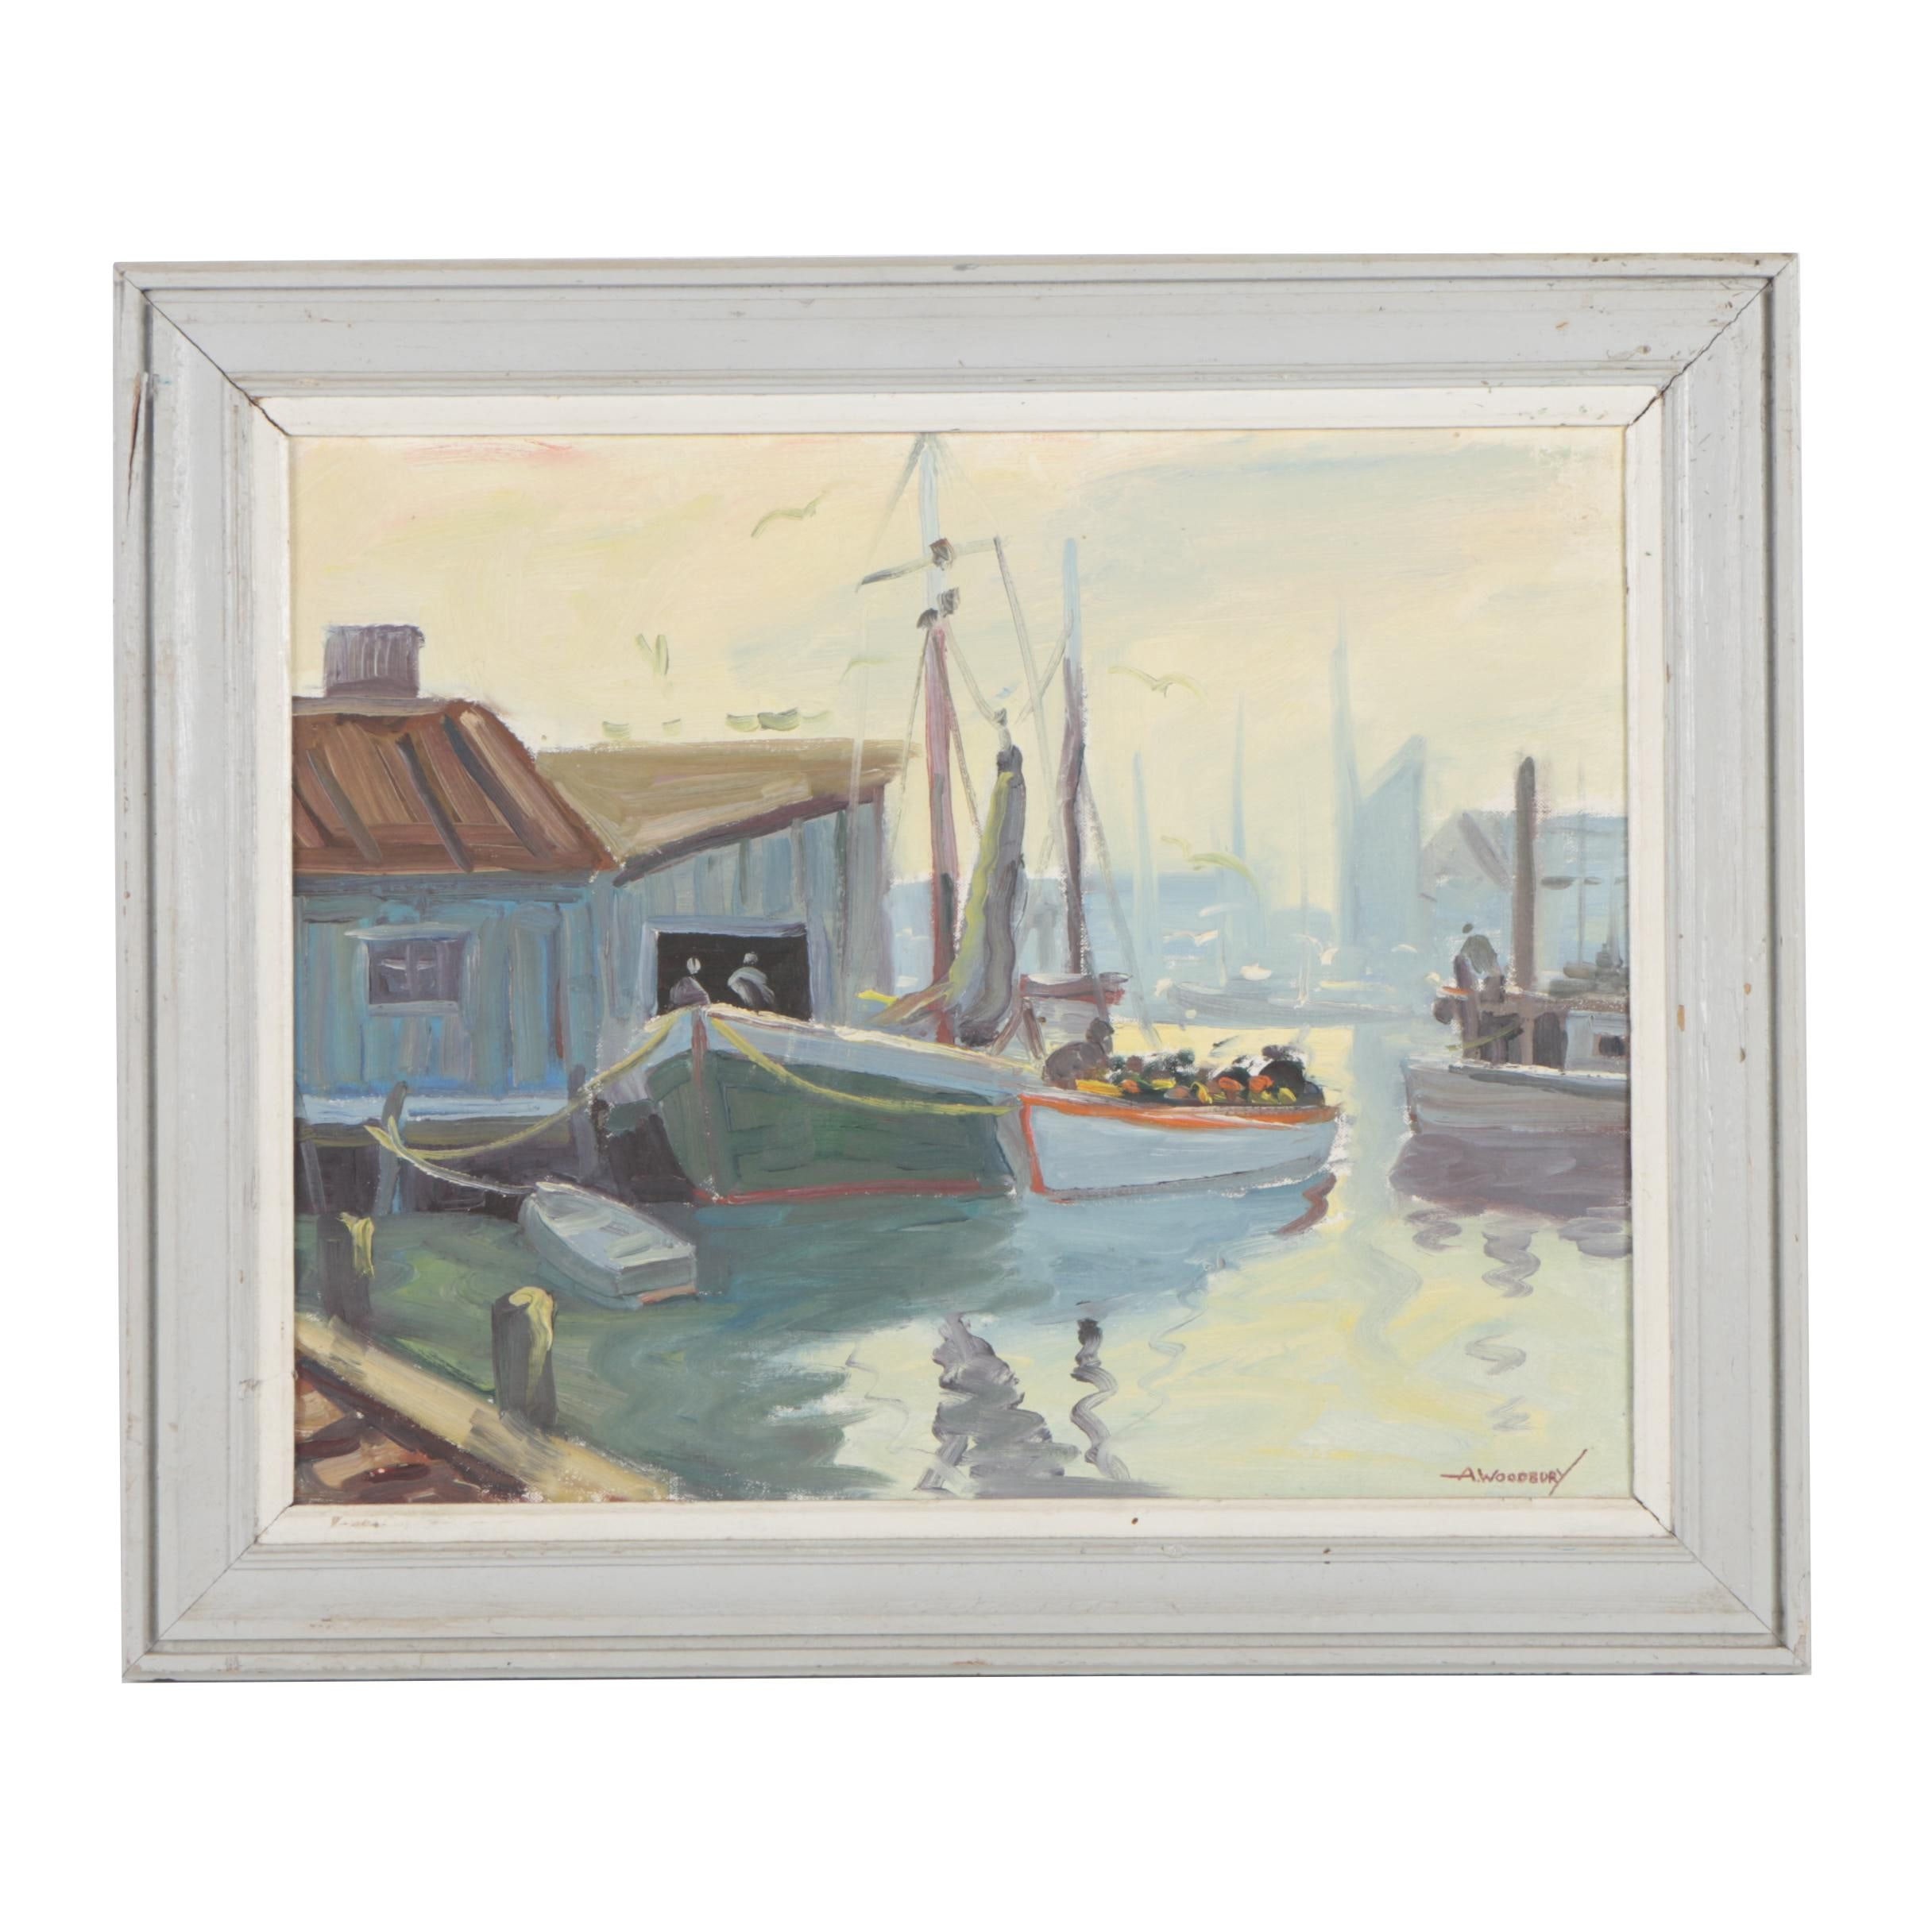 A. Woodbury 1981 Nautical Oil Painting